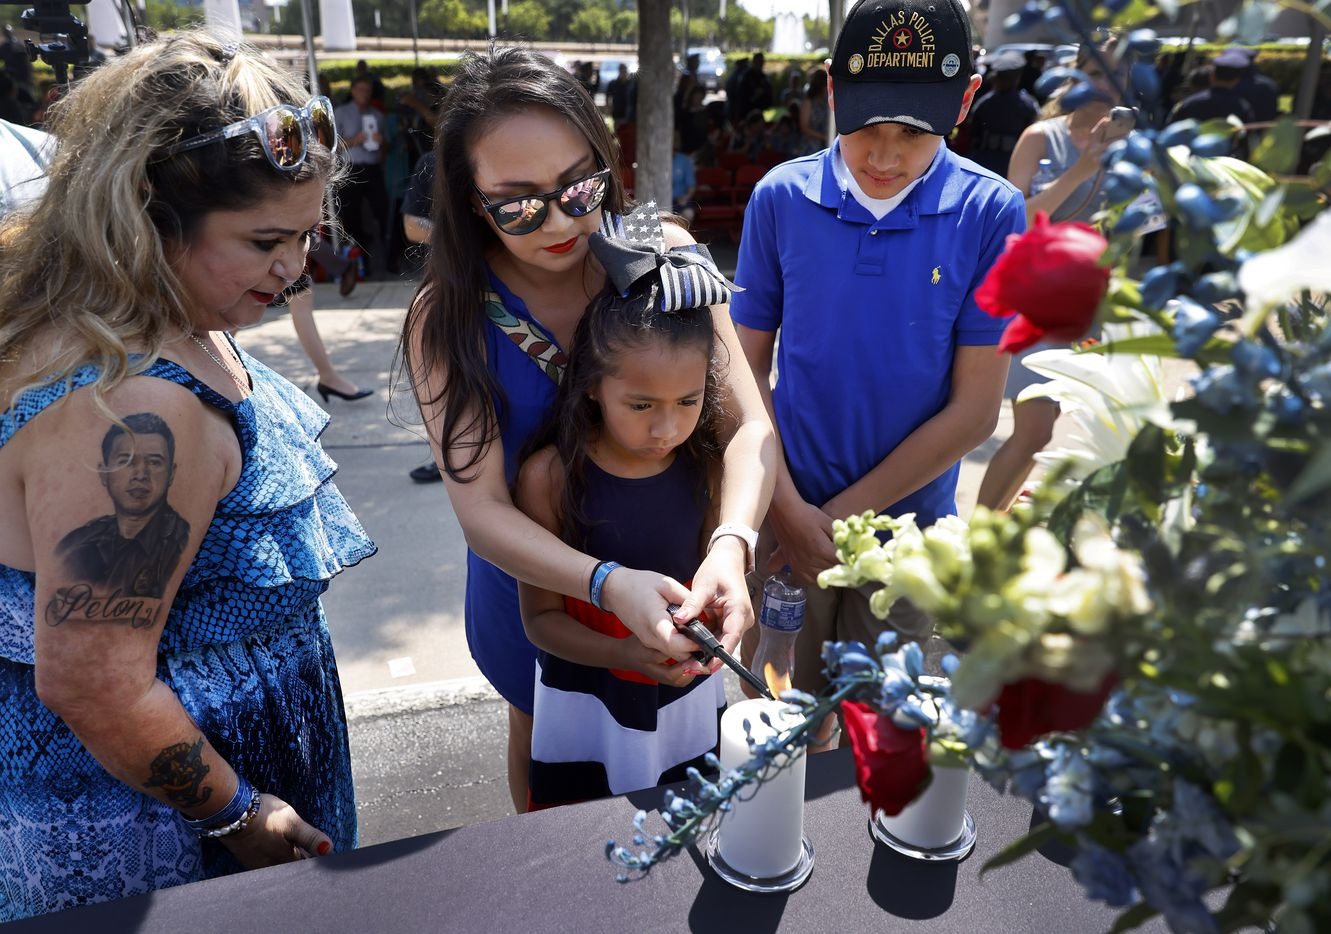 """Kristy Zamarripa, widow of fallen Dallas officer Patricio """"Patrick"""" Zamarripa, helps their daughter Lyncoln, 7, light a candle in his honor following the annual Police Memorial Day in which the Department honored officers who died in the line of duty at the Dallas Police Memorial in downtown Dallas, Wednesday, July 7, 2021.  His stepson Dylan Hoover is pictured on the right and his mother Valerie Zamarripa, left, joined in the remembrance on the 5th anniversary of the July 7th ambush. (Tom Fox/The Dallas Morning News)"""